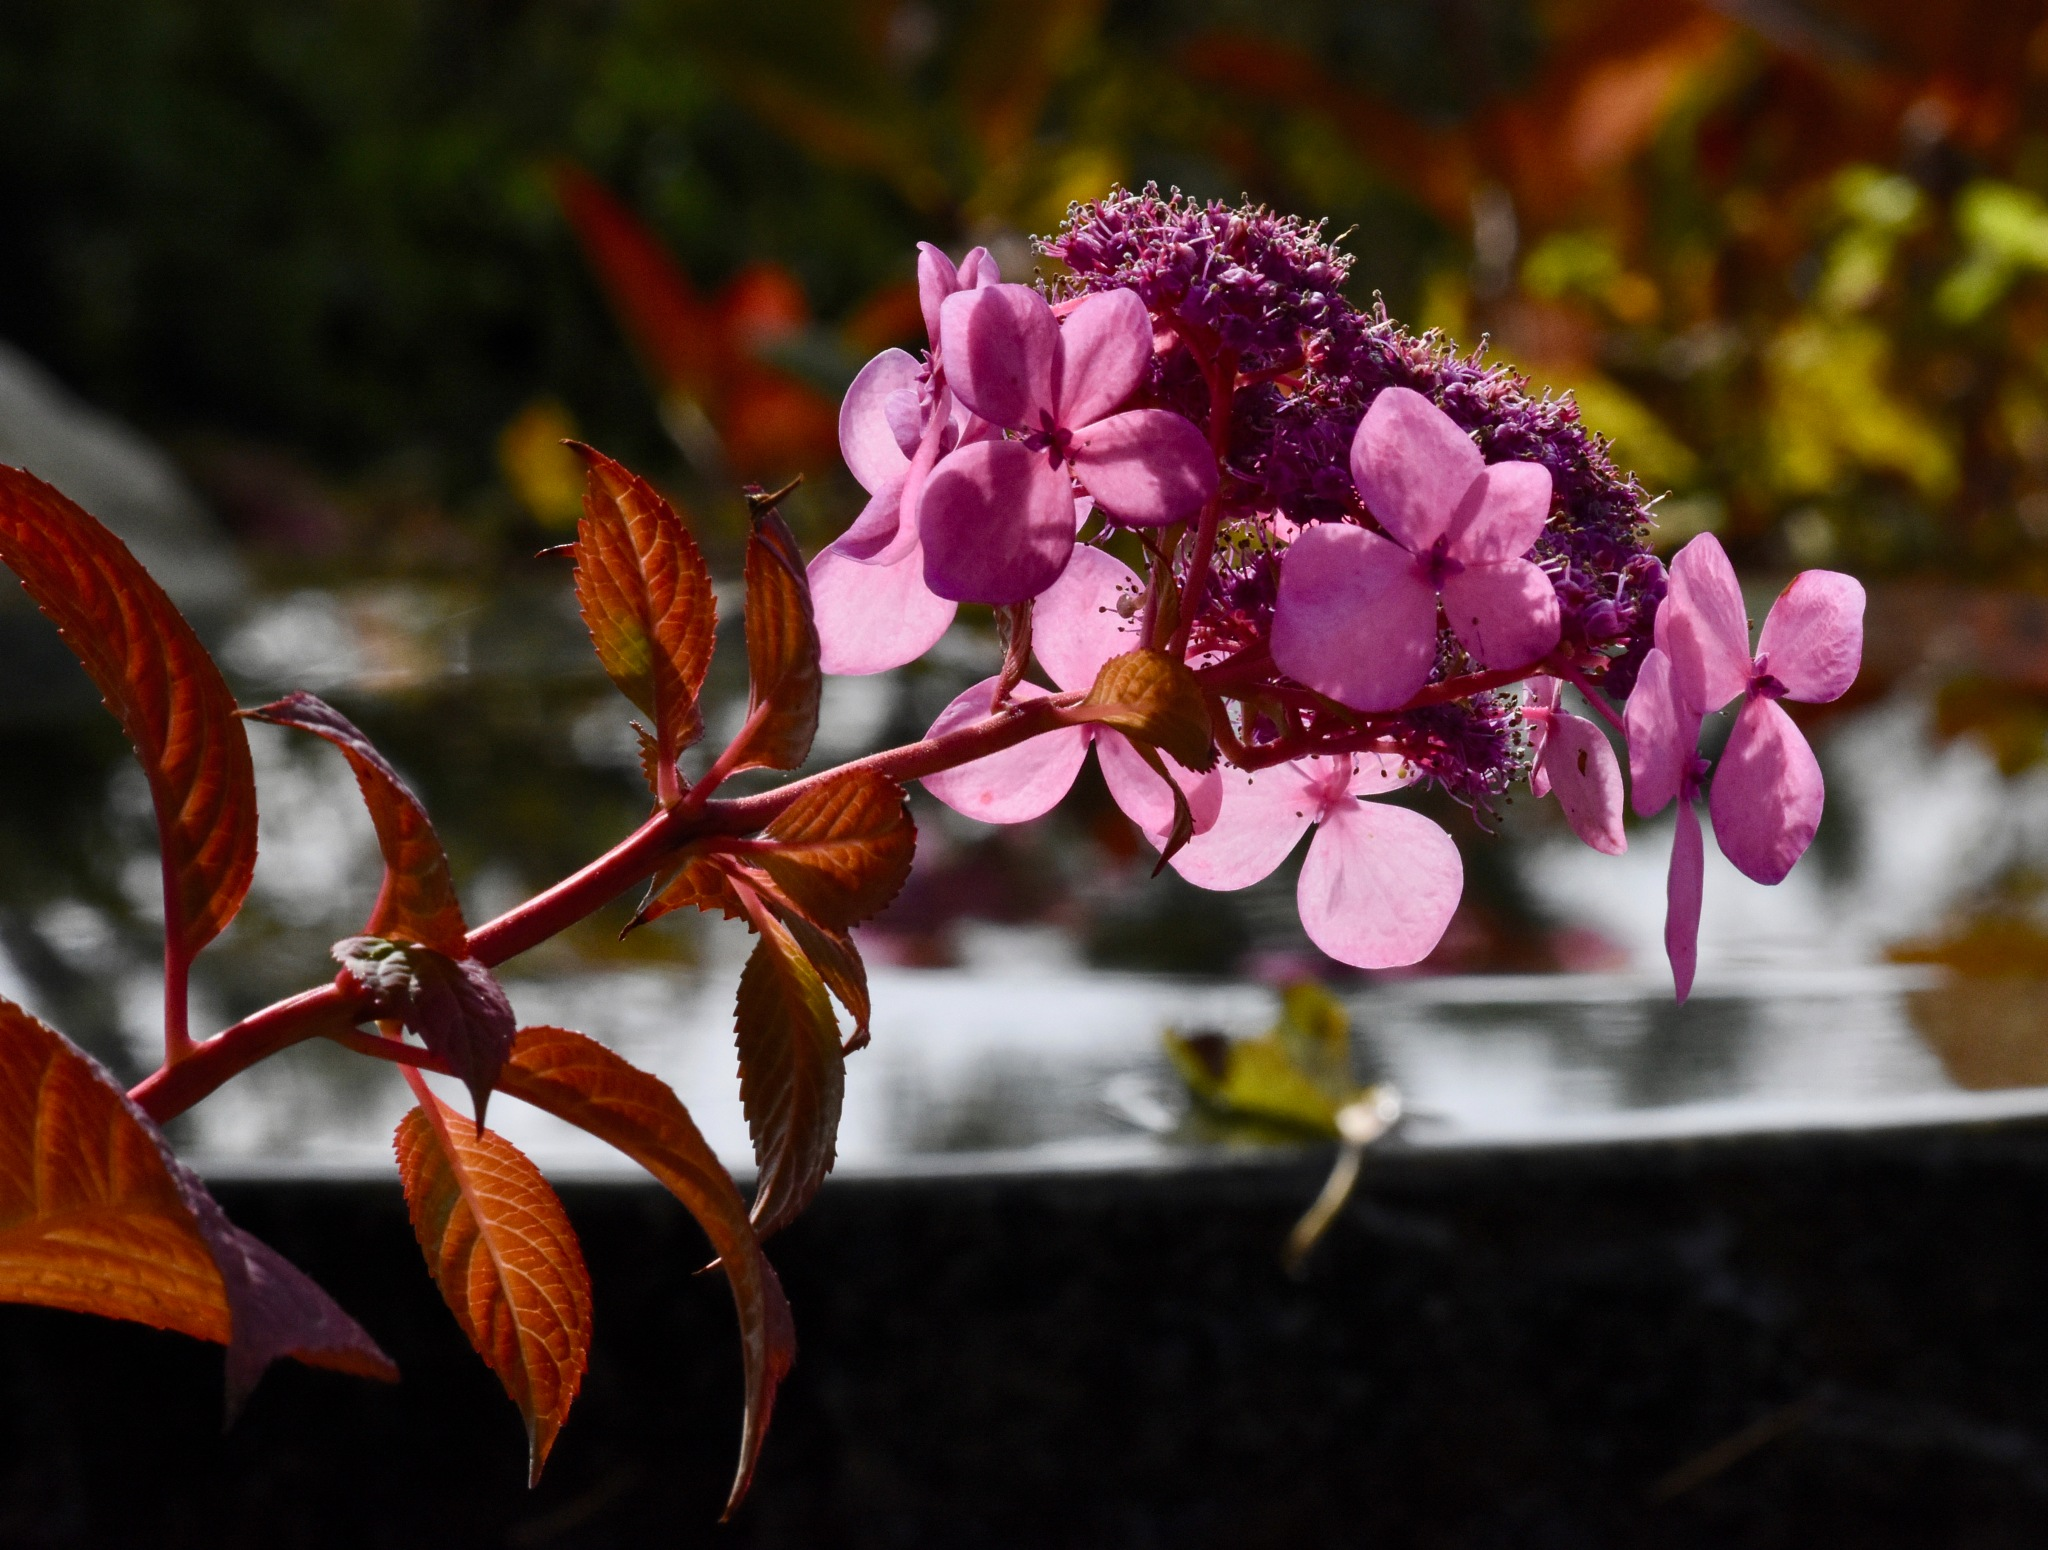 Flowers and basin by John  Lepisto